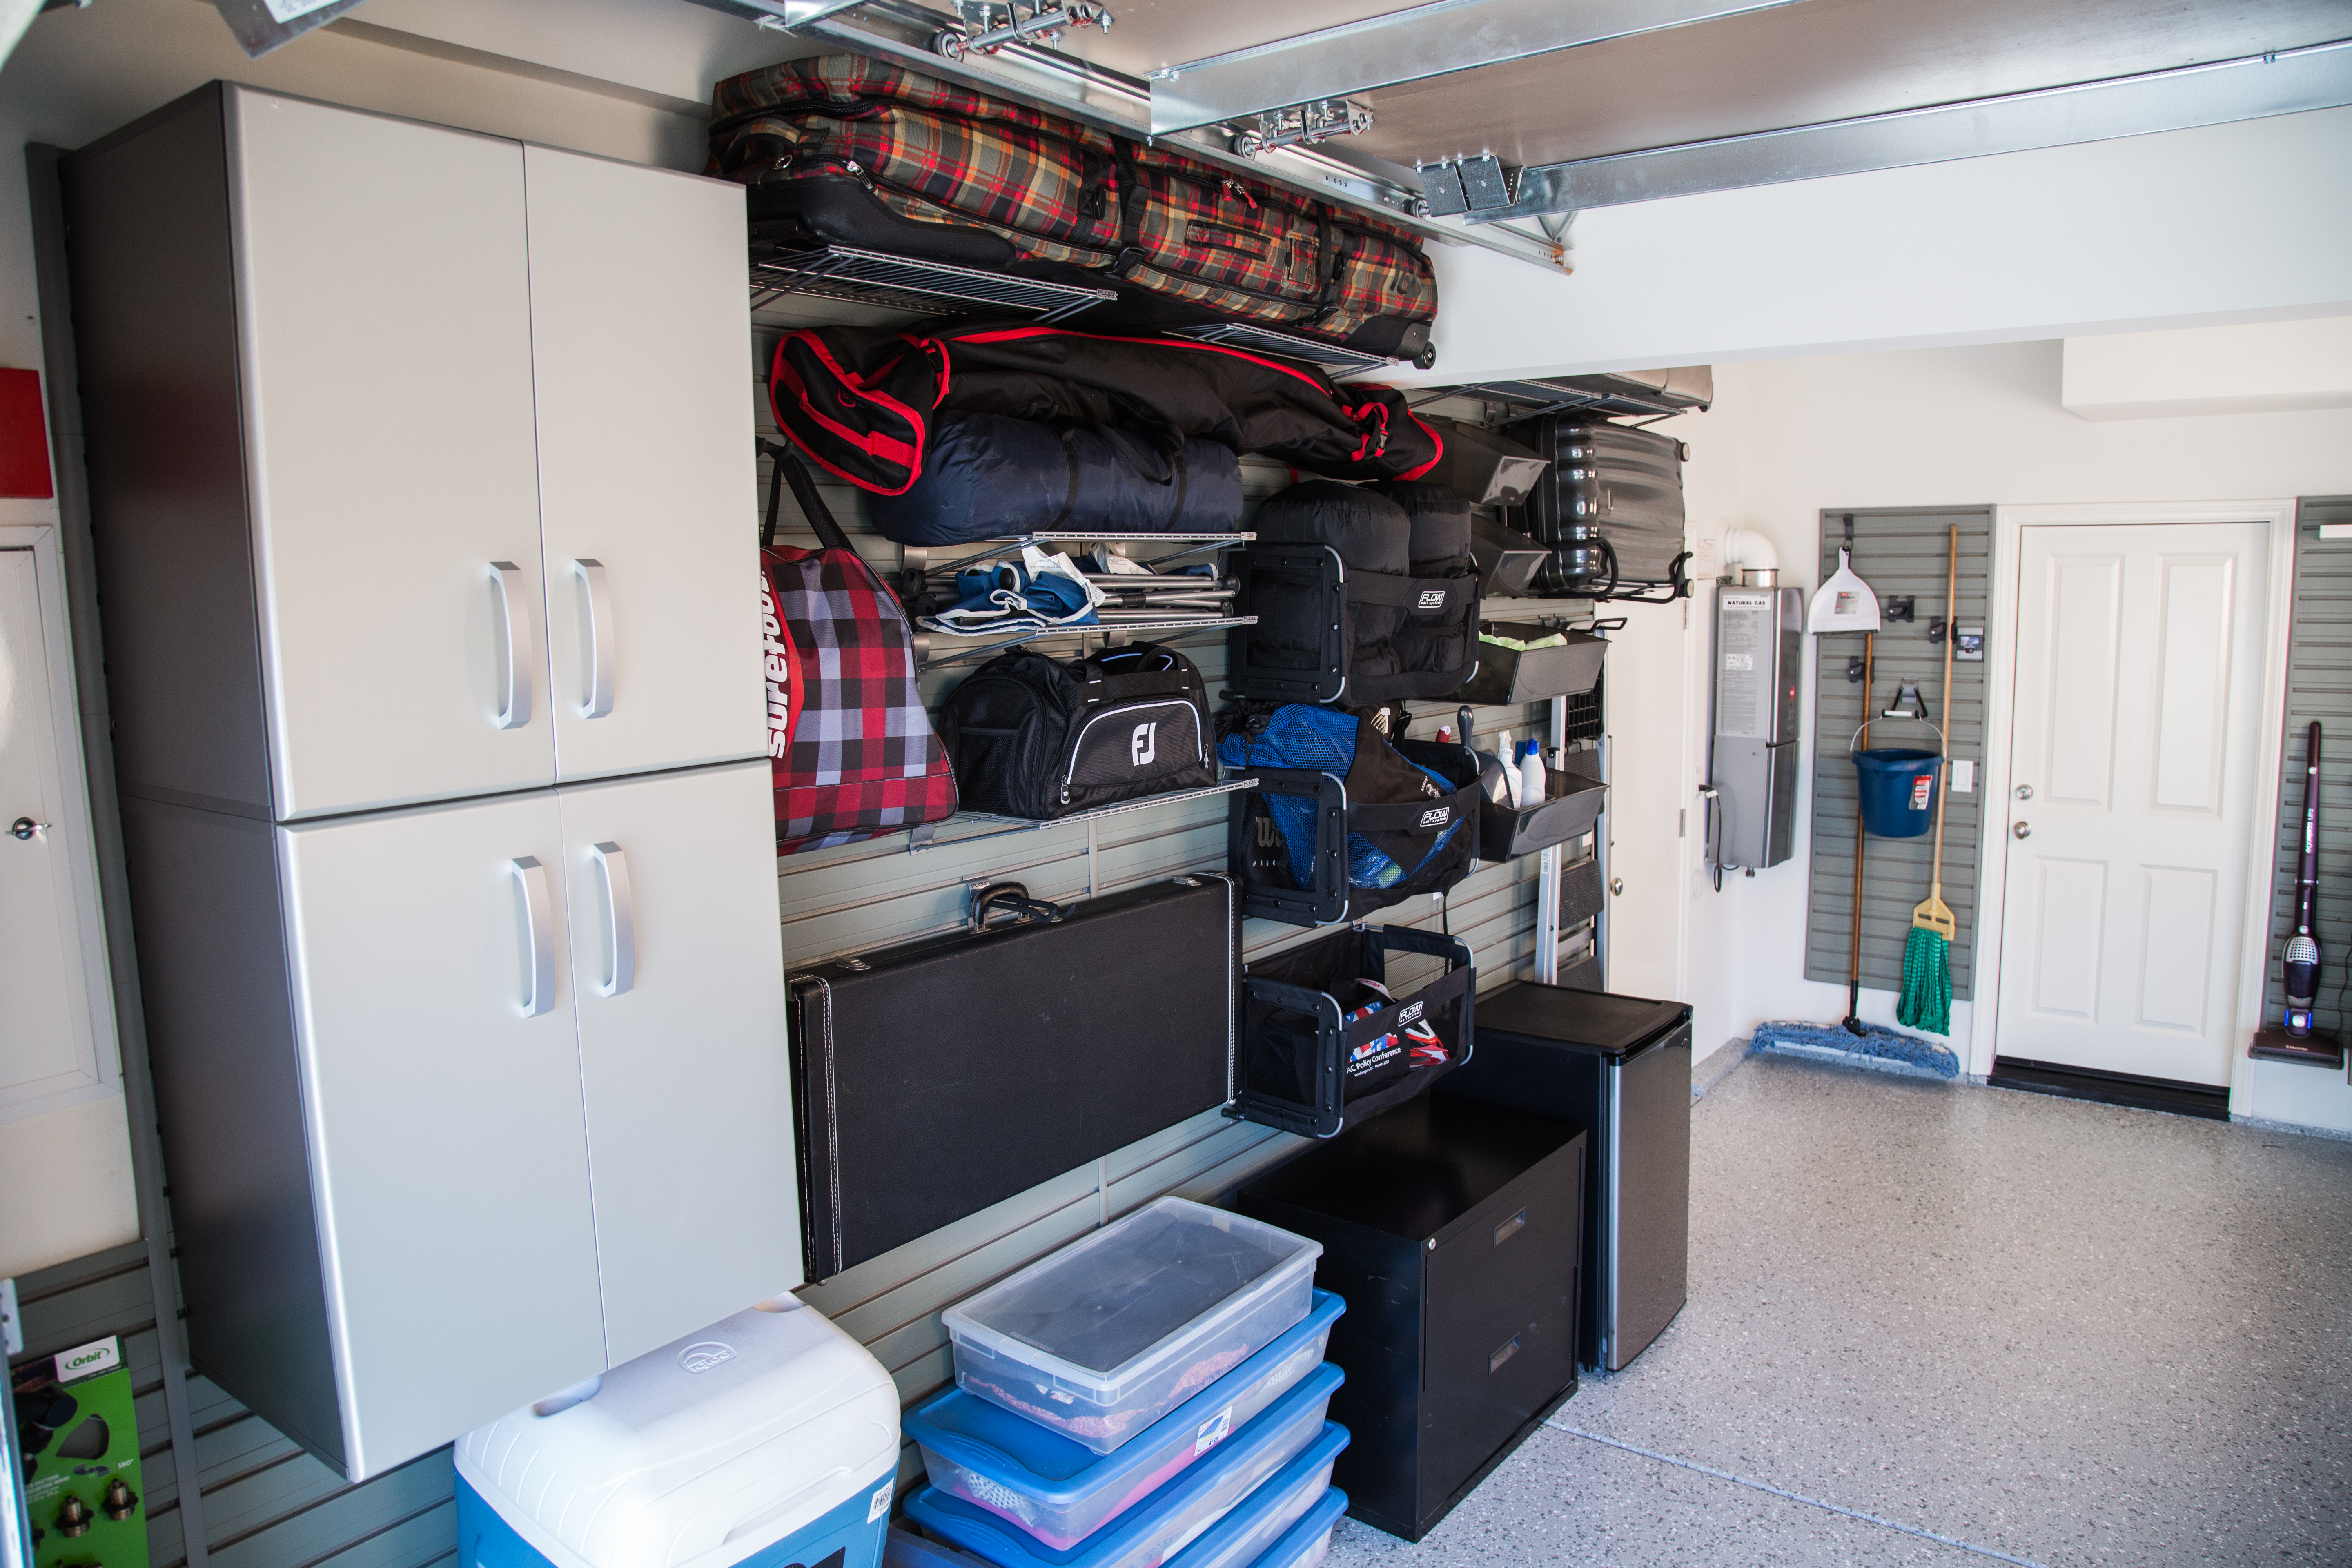 The Only Way To Regain Order In A Cluttered Garage Is To Make An Even  Bigger Mess By Emptying Out The Space And Evaluating What You Have To Work  With.